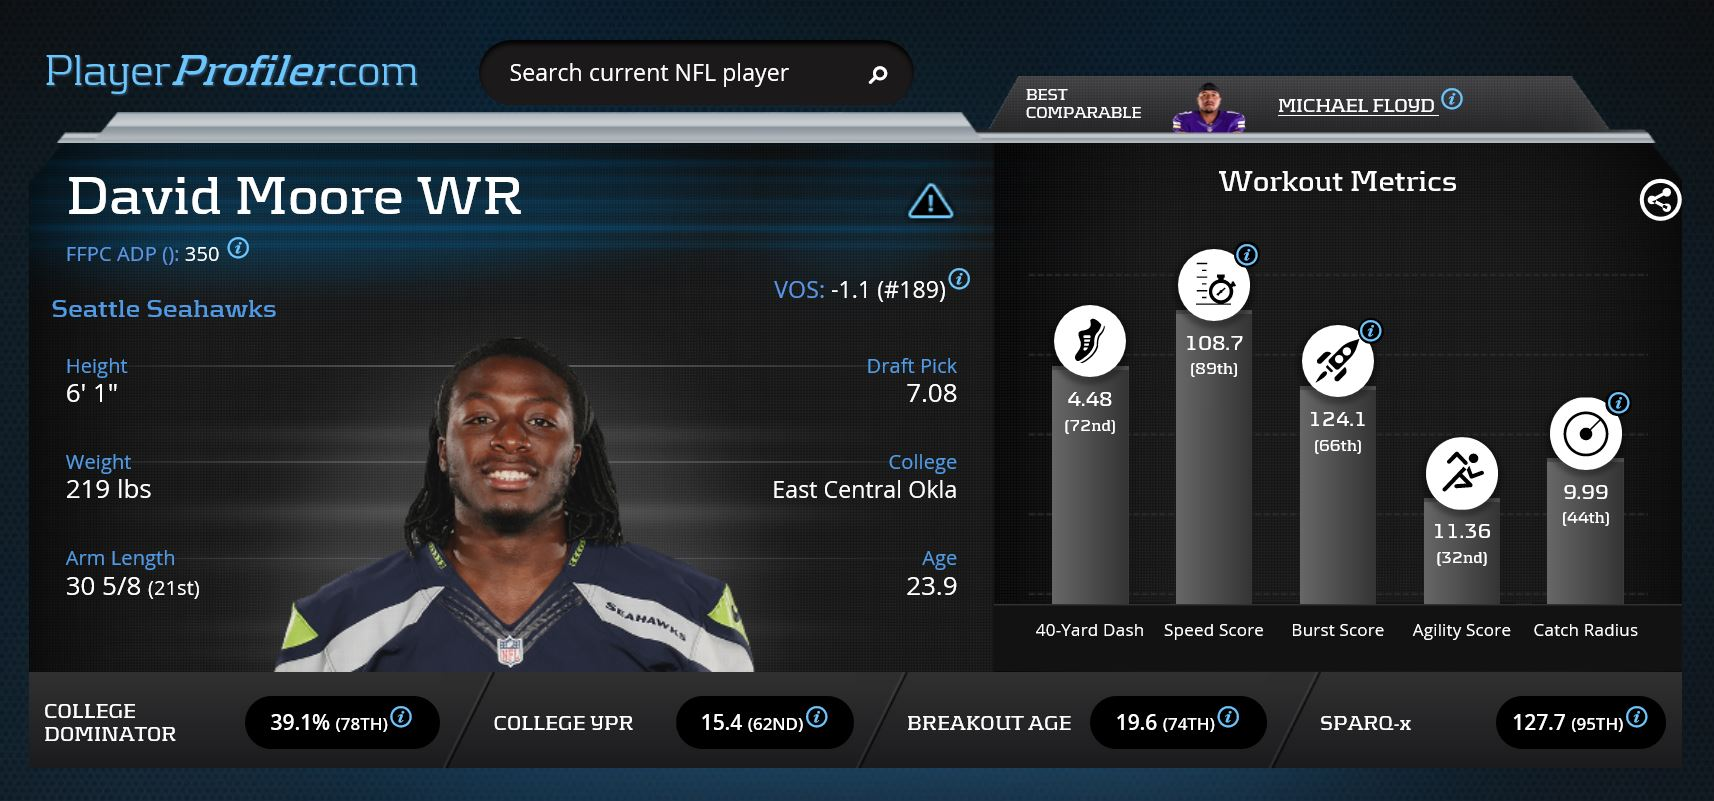 David Moore is a must add on the fantasy football waiver wire